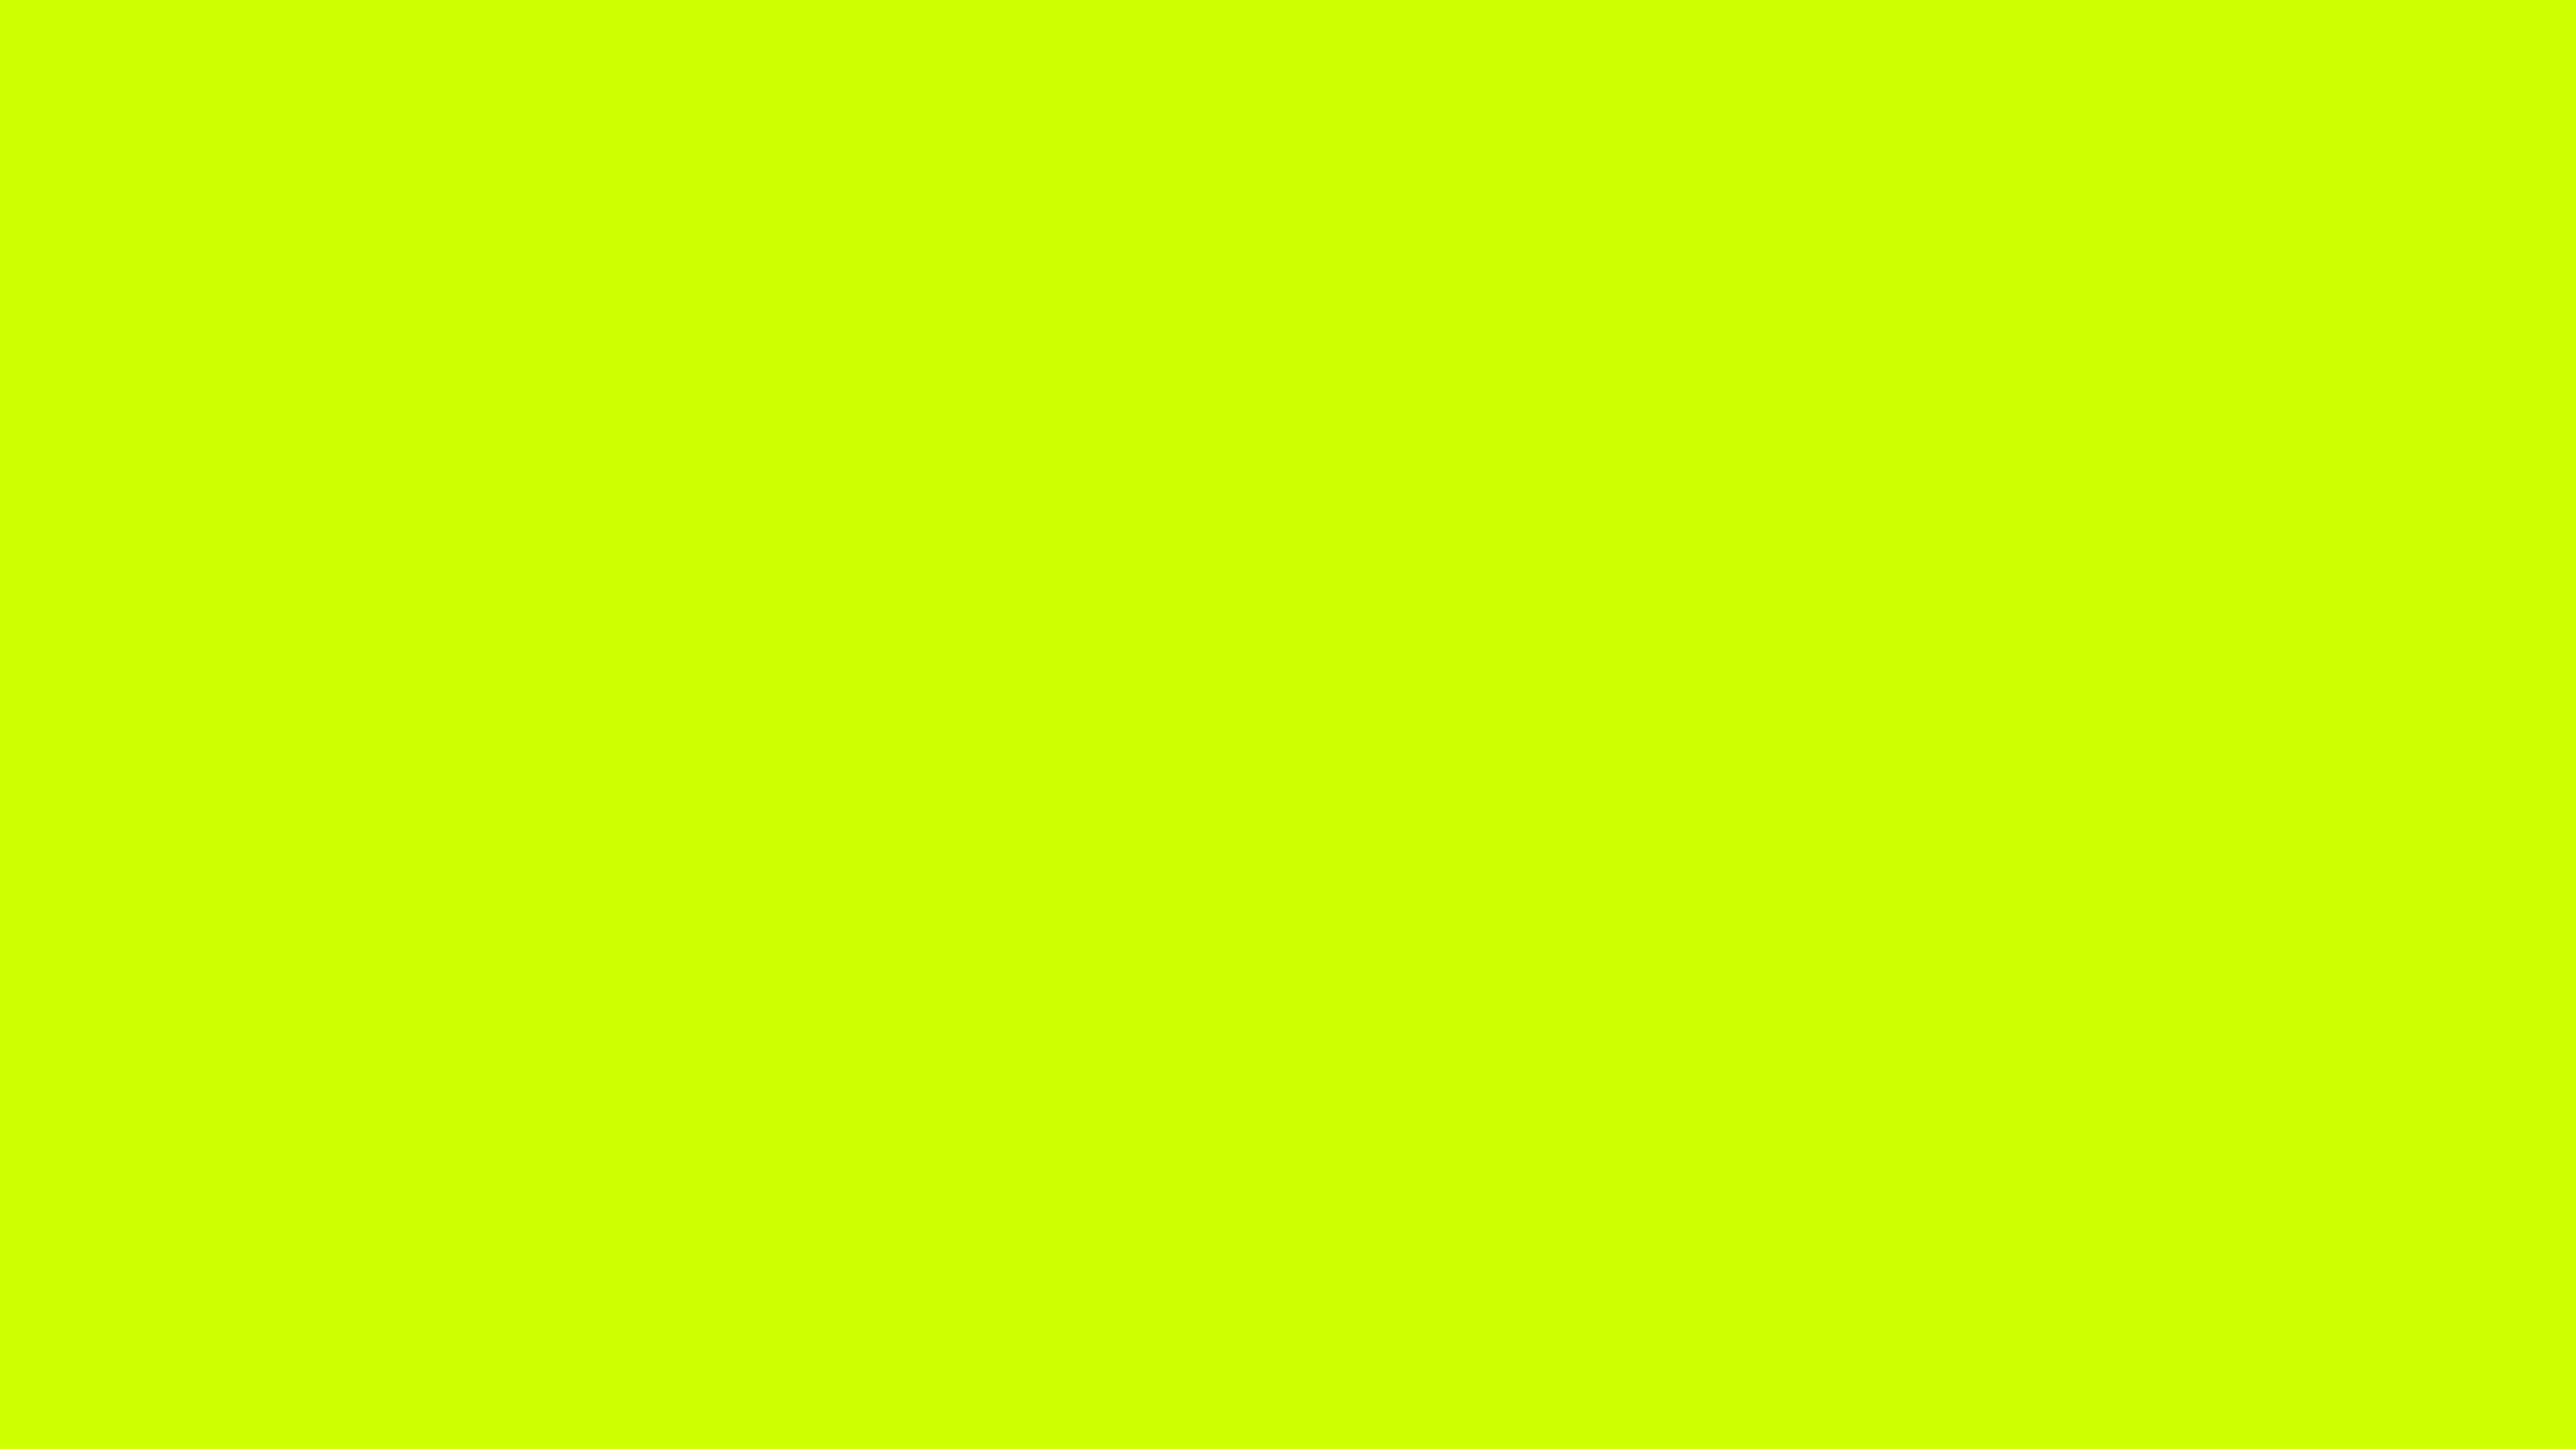 5120x2880 Fluorescent Yellow Solid Color Background